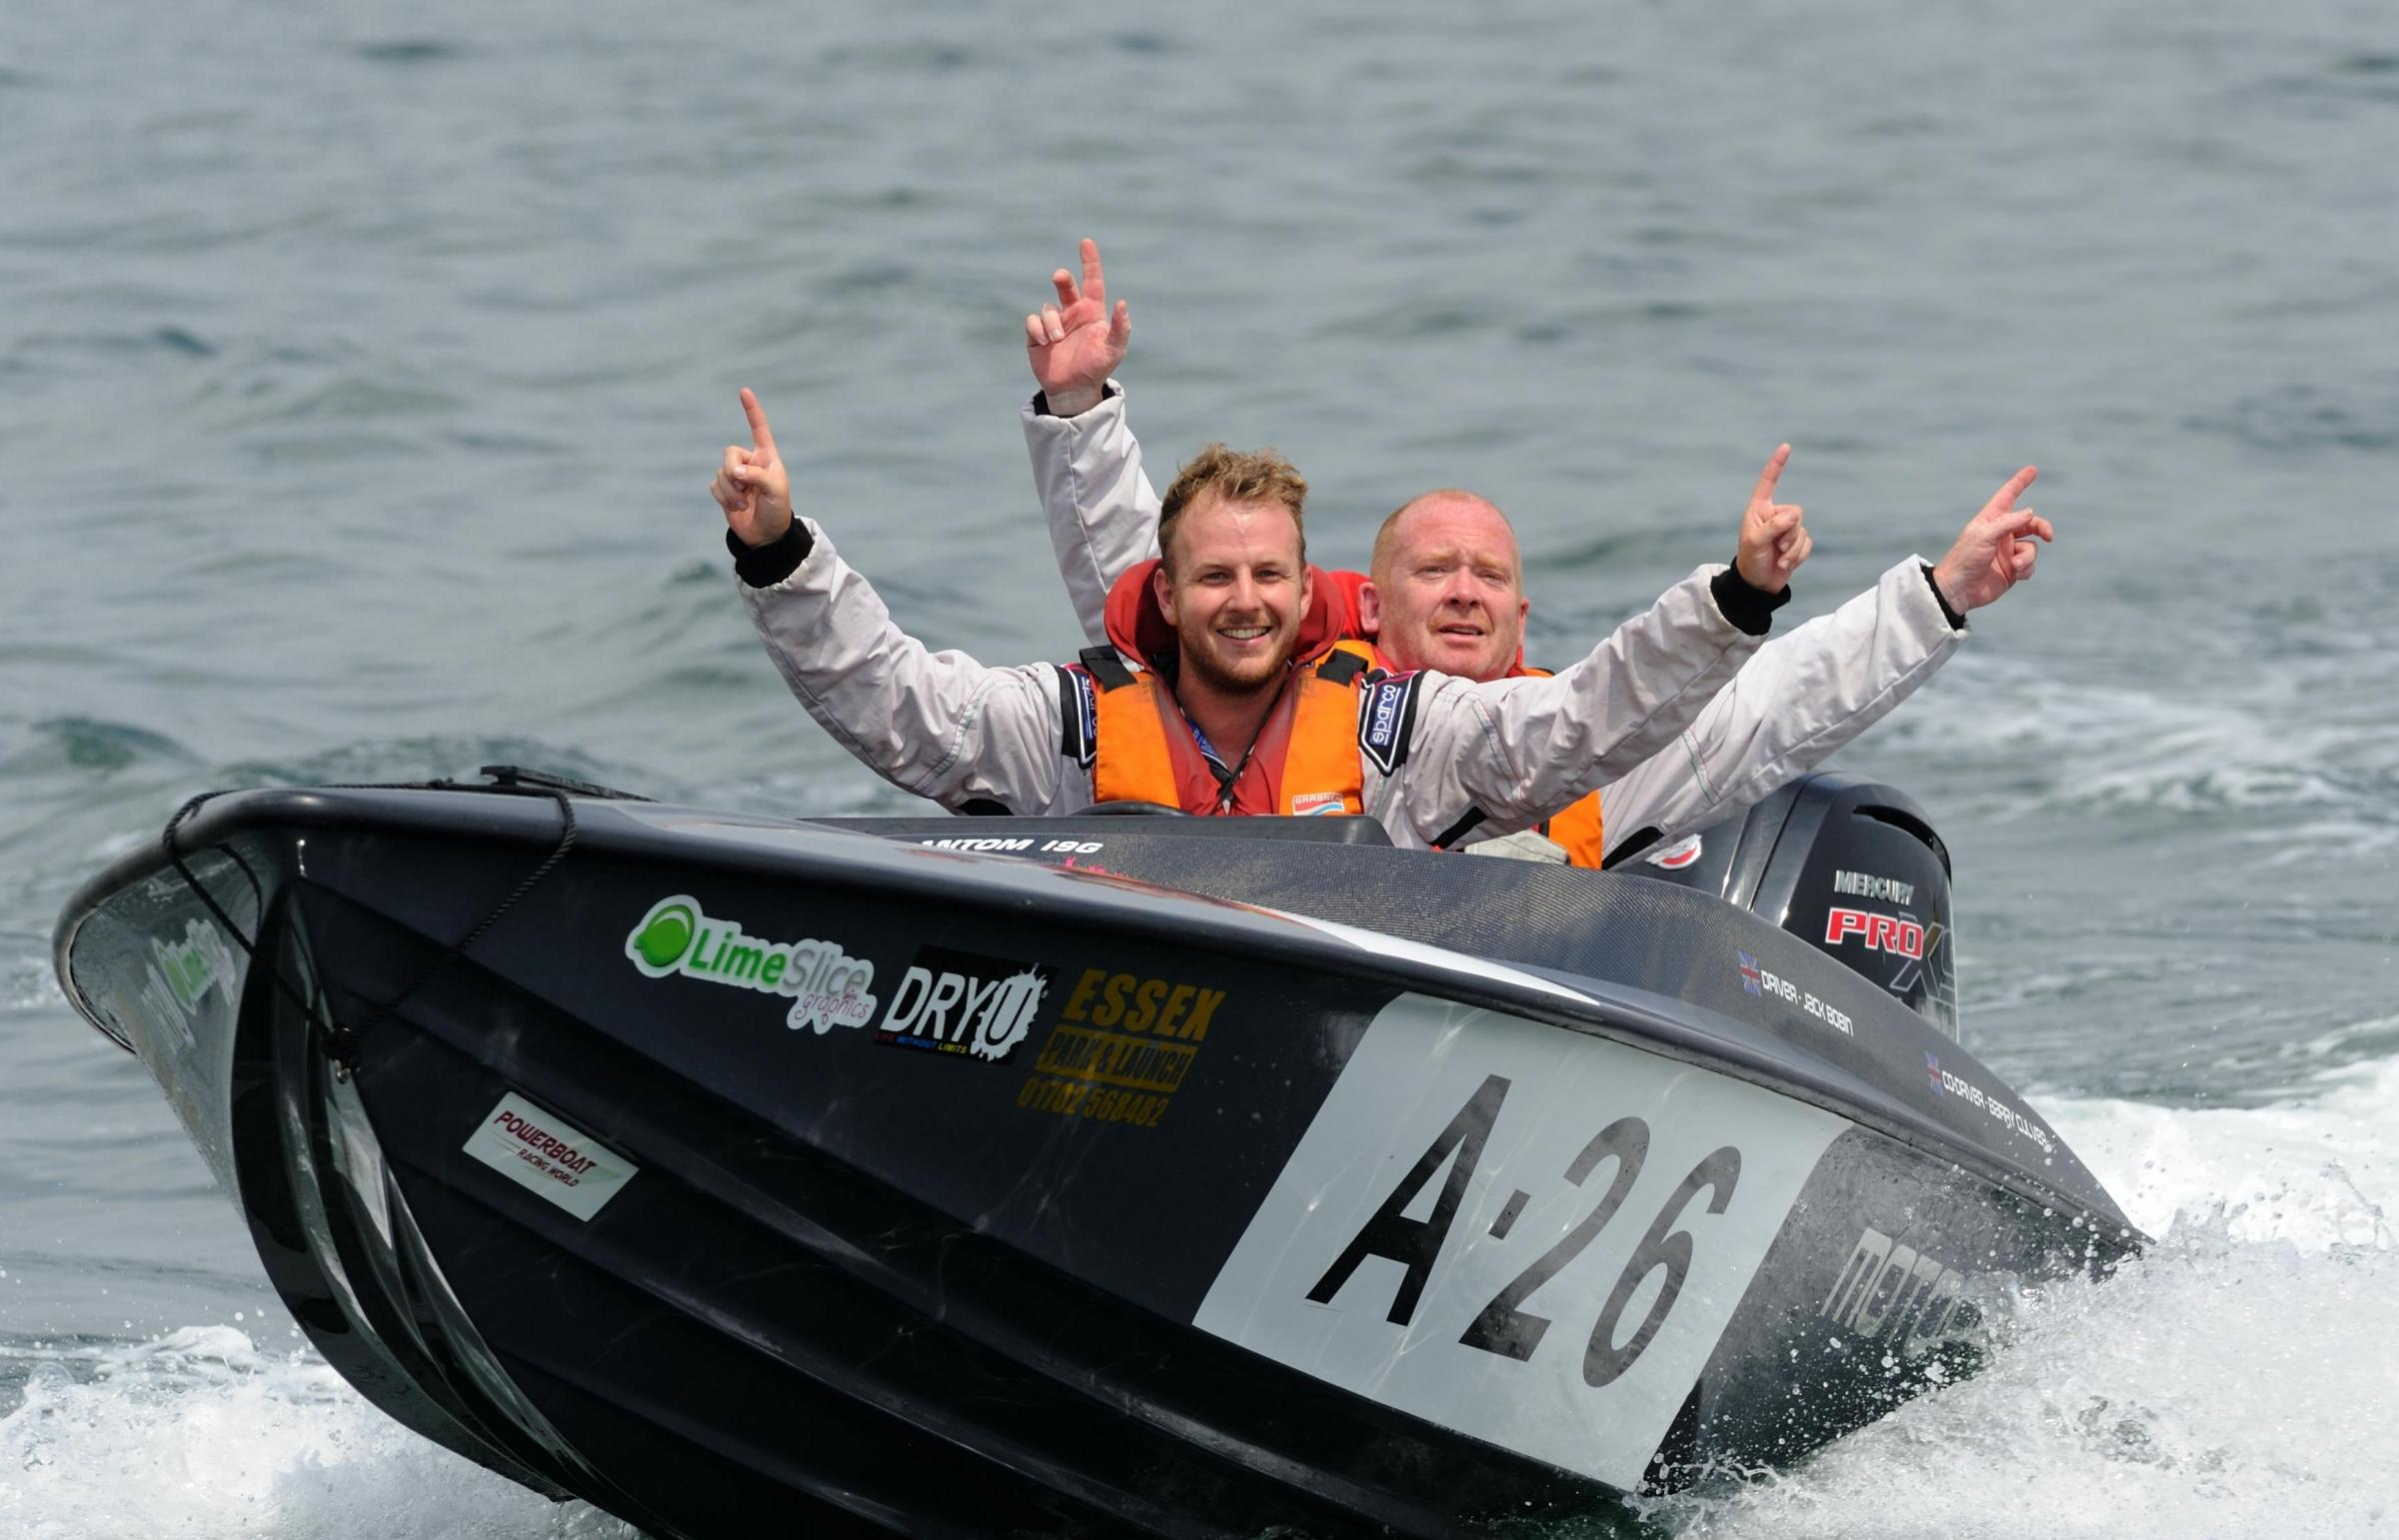 CLASS VICTORS: Jack Bobin and Stuart Unwin celebrate their Class Three win 	              Picture: CHRIS DAVIES